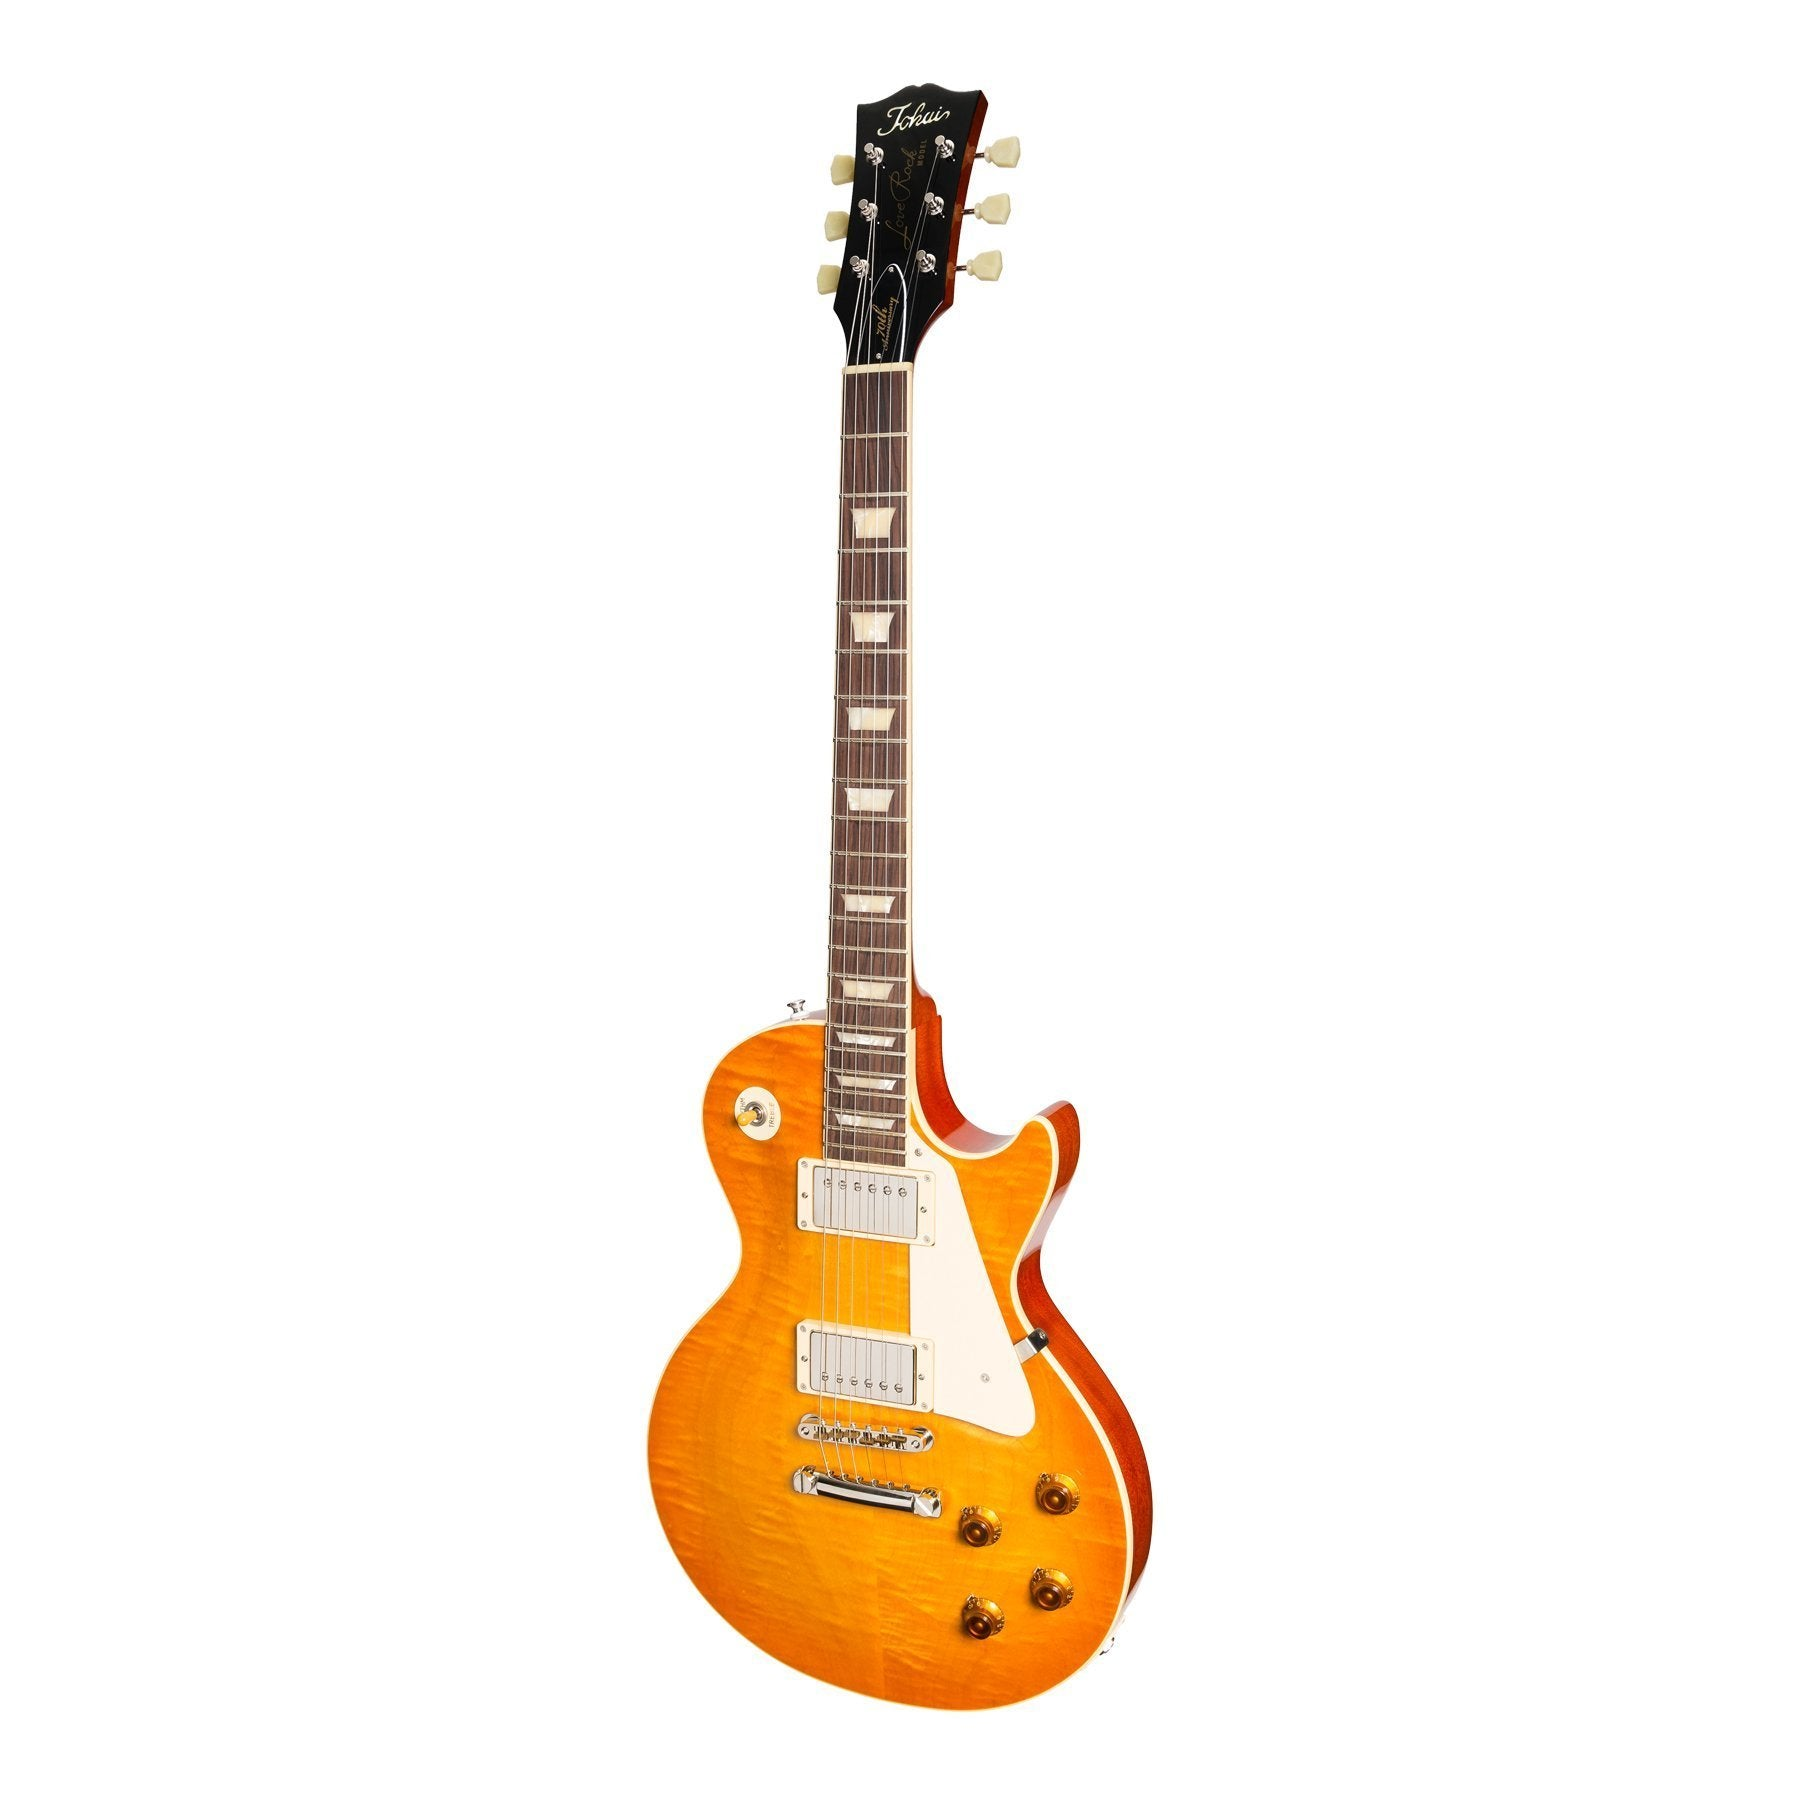 Tokai '70th Anniversary Edition' LS-186EF LP-Style Electric Guitar (Honey Sunburst)-LS-186EF-HB